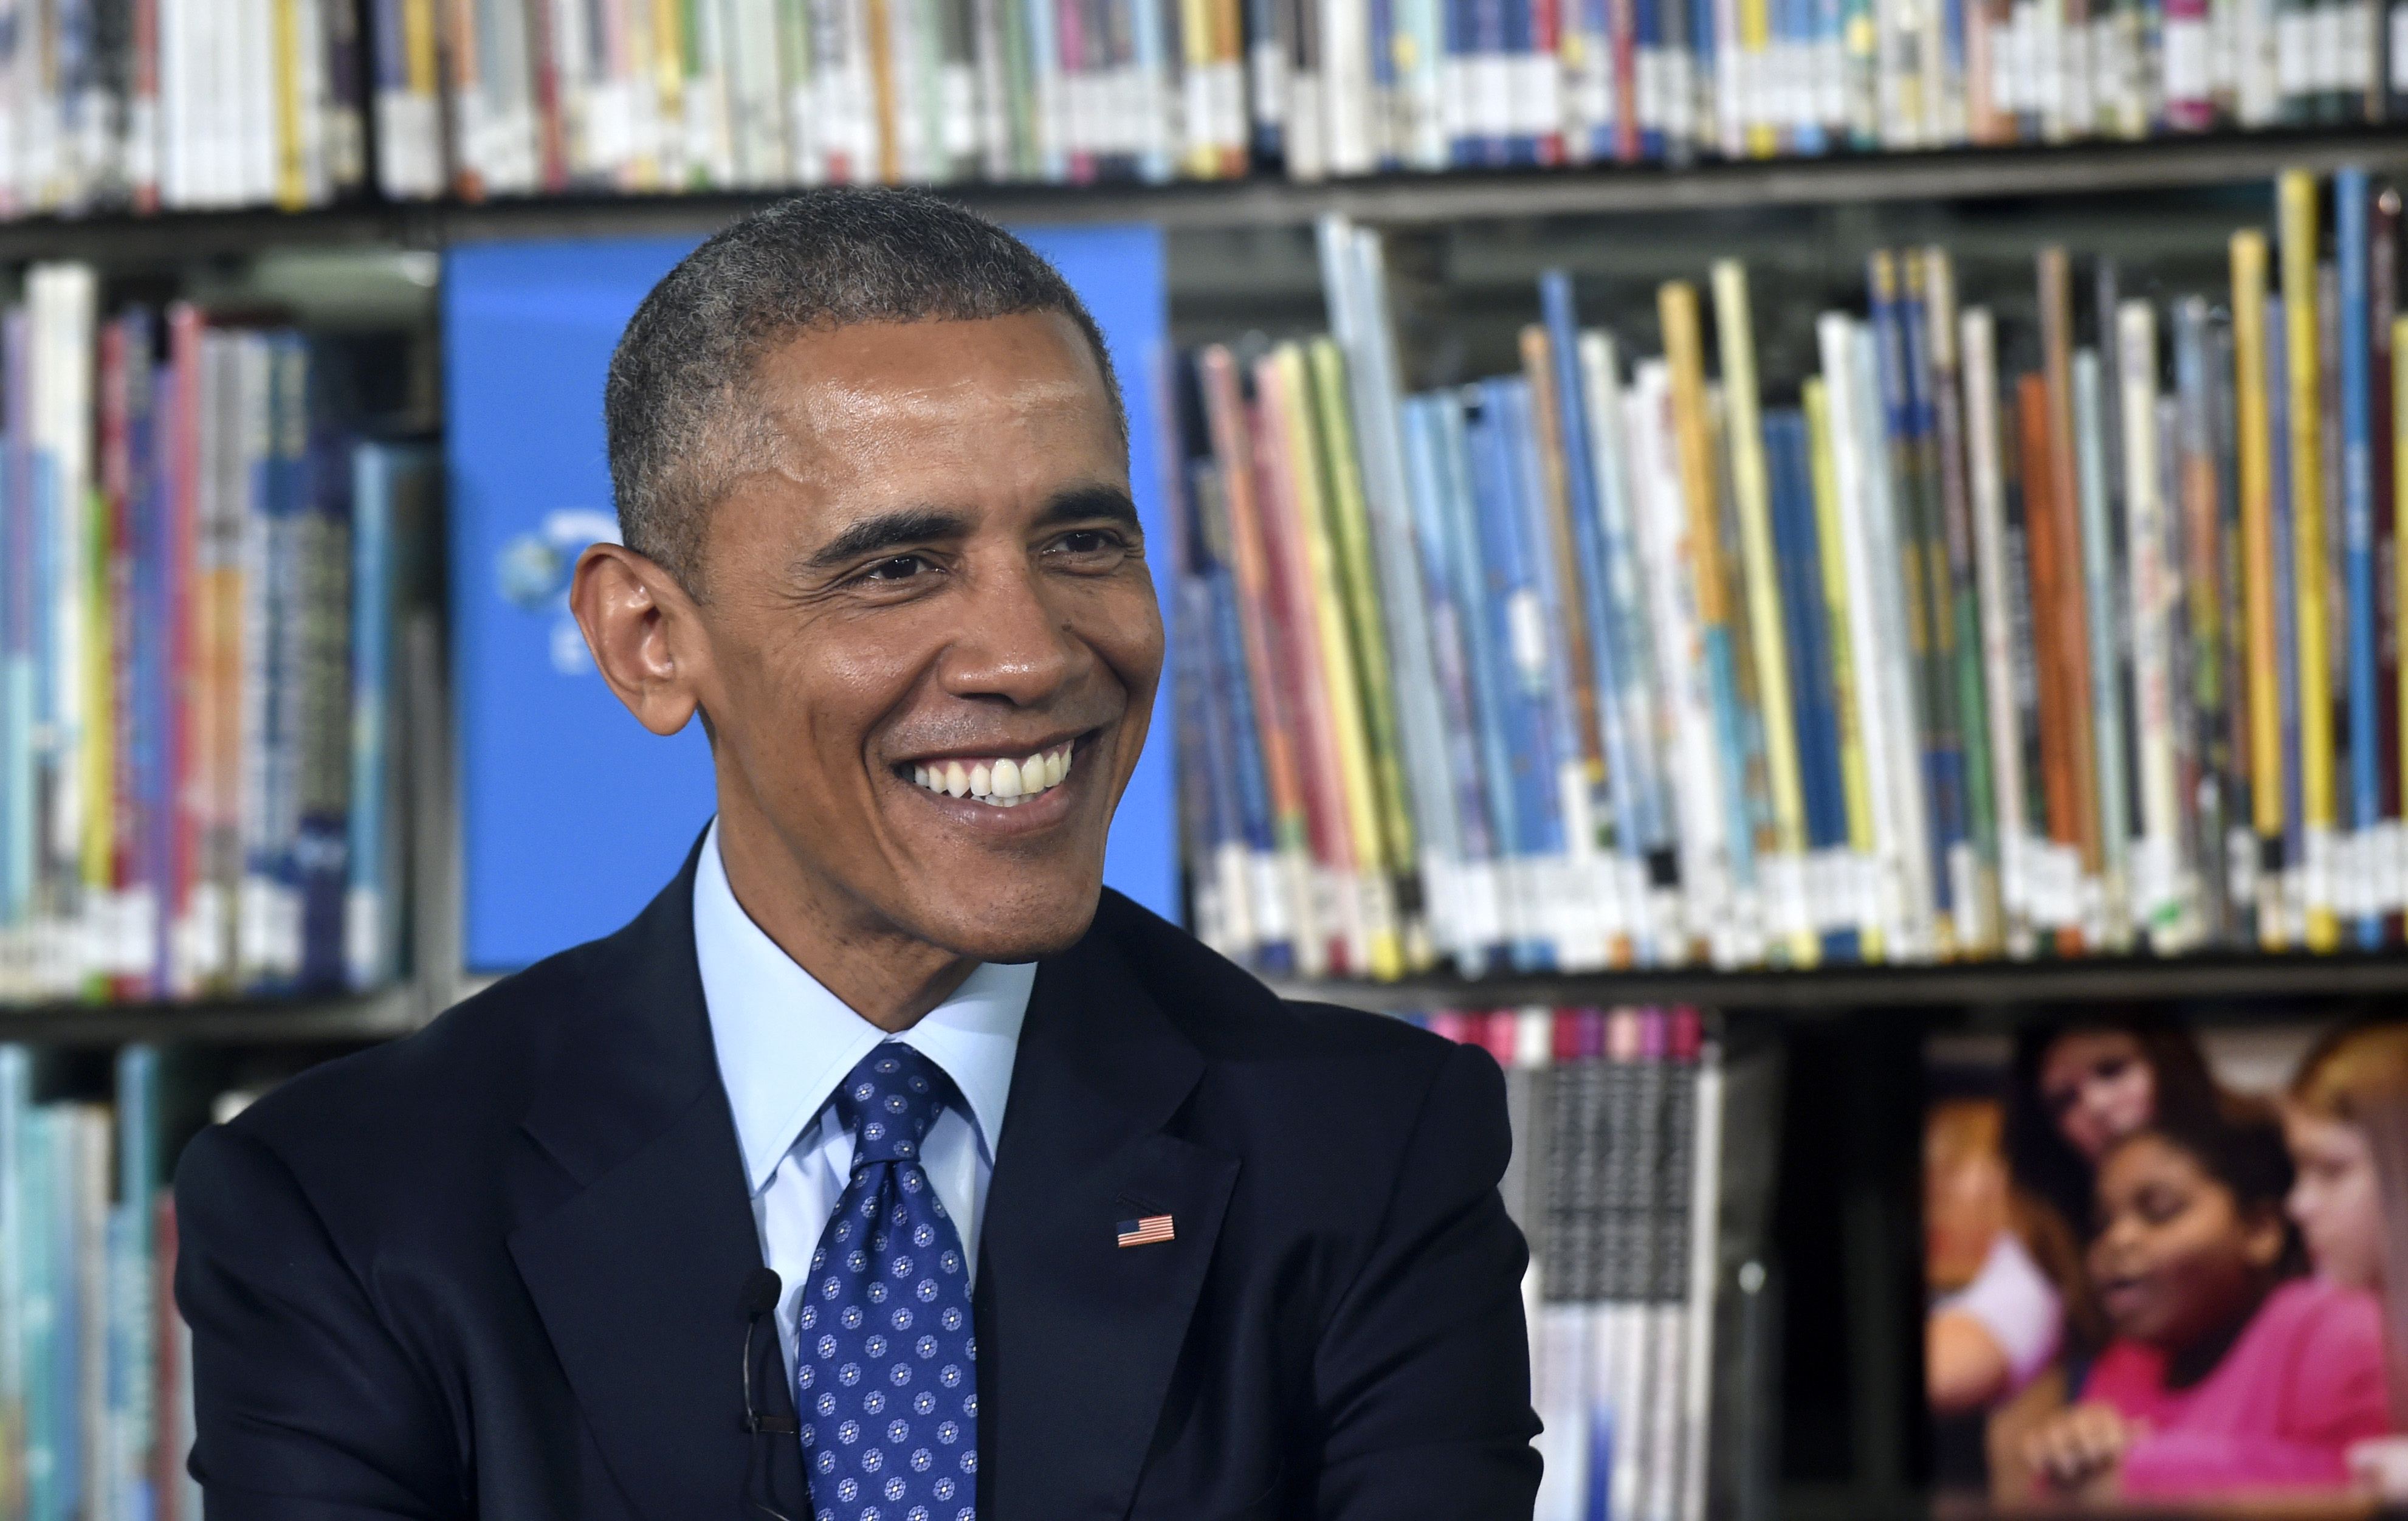 President Barack Obama smiles as he speaks at Anacostia Library in Washington, Thursday, April 30, 2015